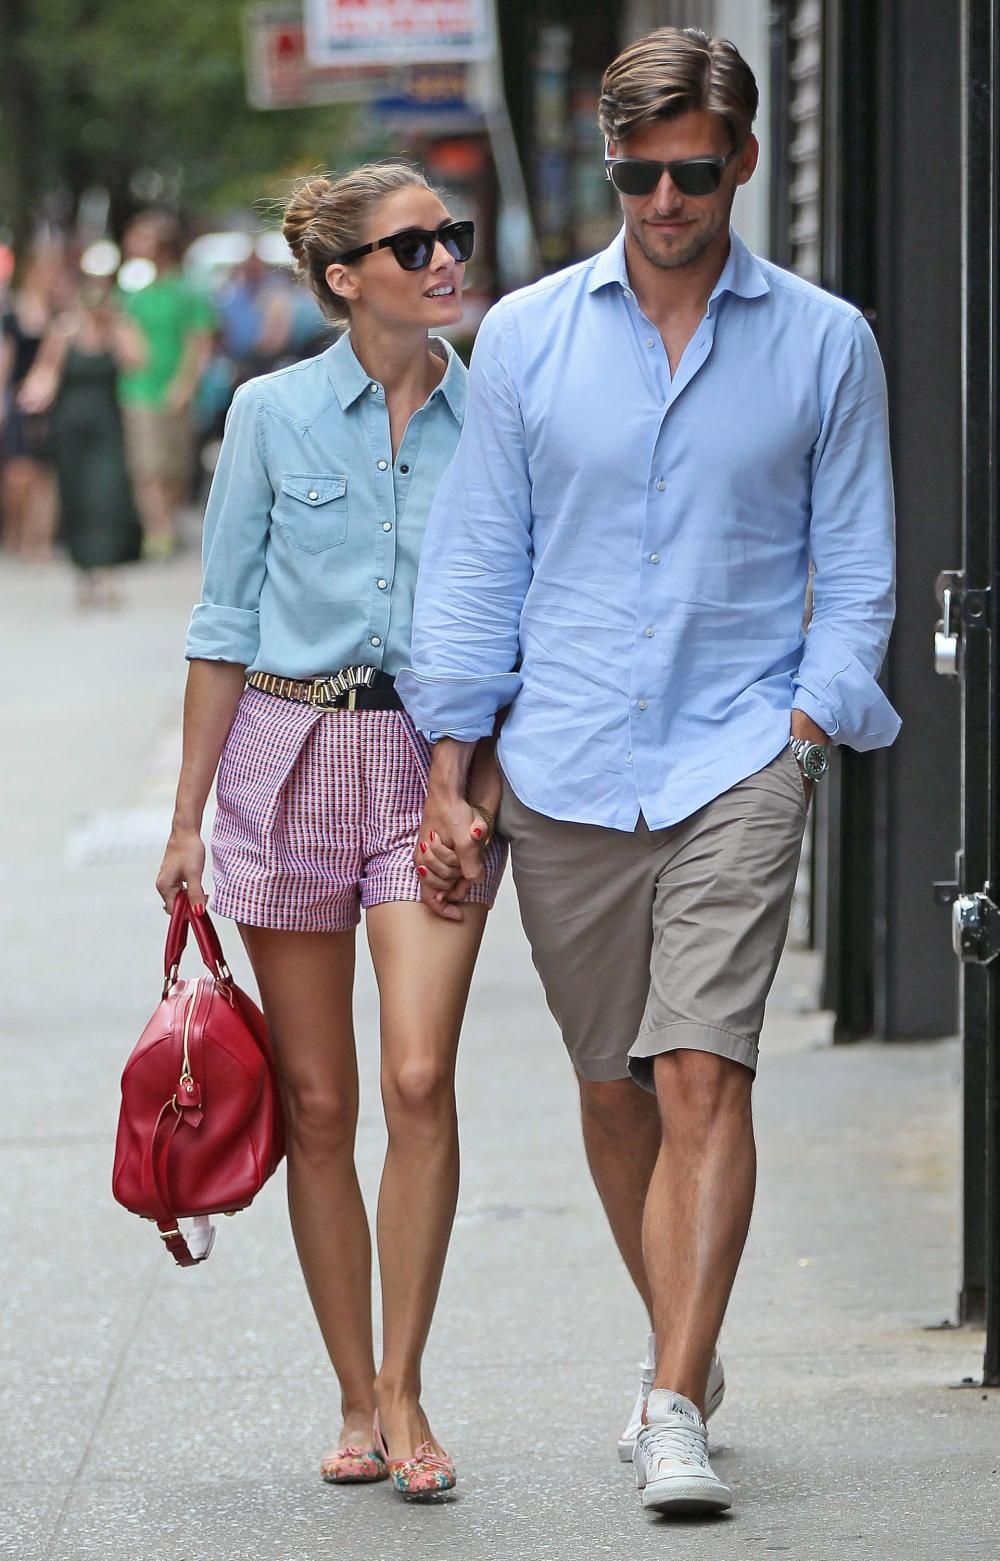 The best examples of perfectly dressed couples in the summer season